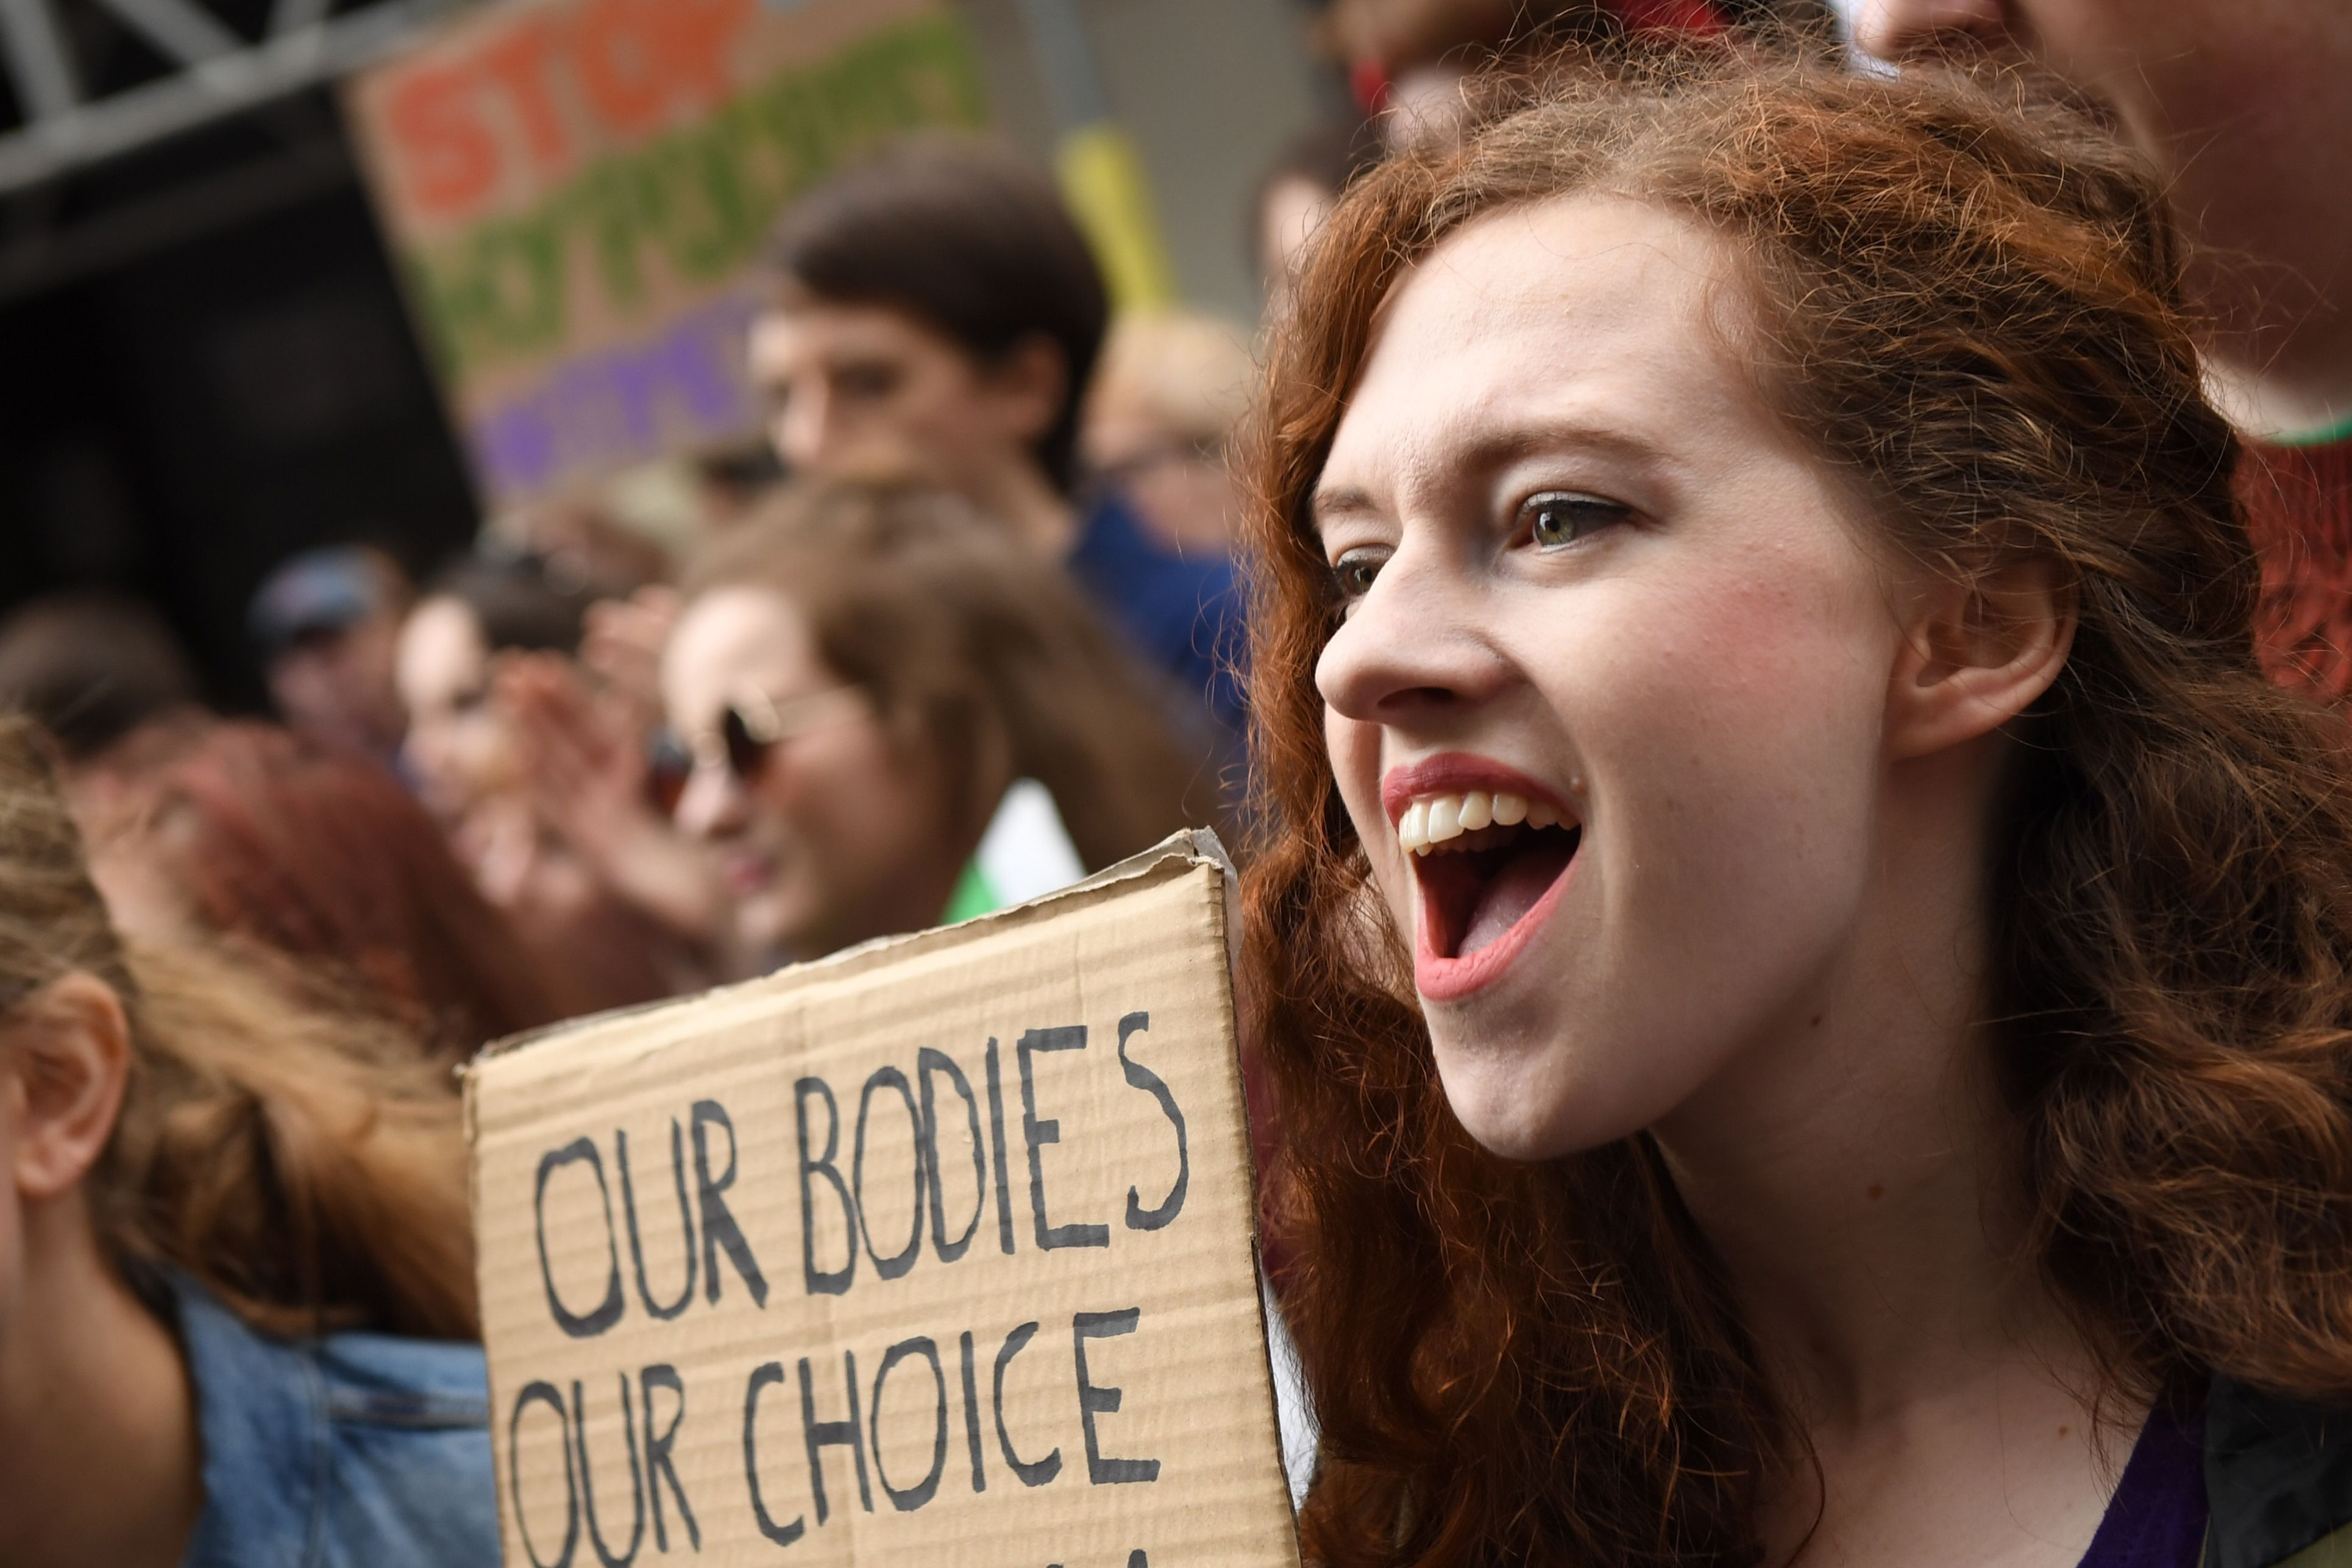 Protesters hold up placards during the London March for Choice, calling for the legalising of abortion in Ireland after the referendum announcement, outside the Embassy of Ireland in central London on September 30, 2017.